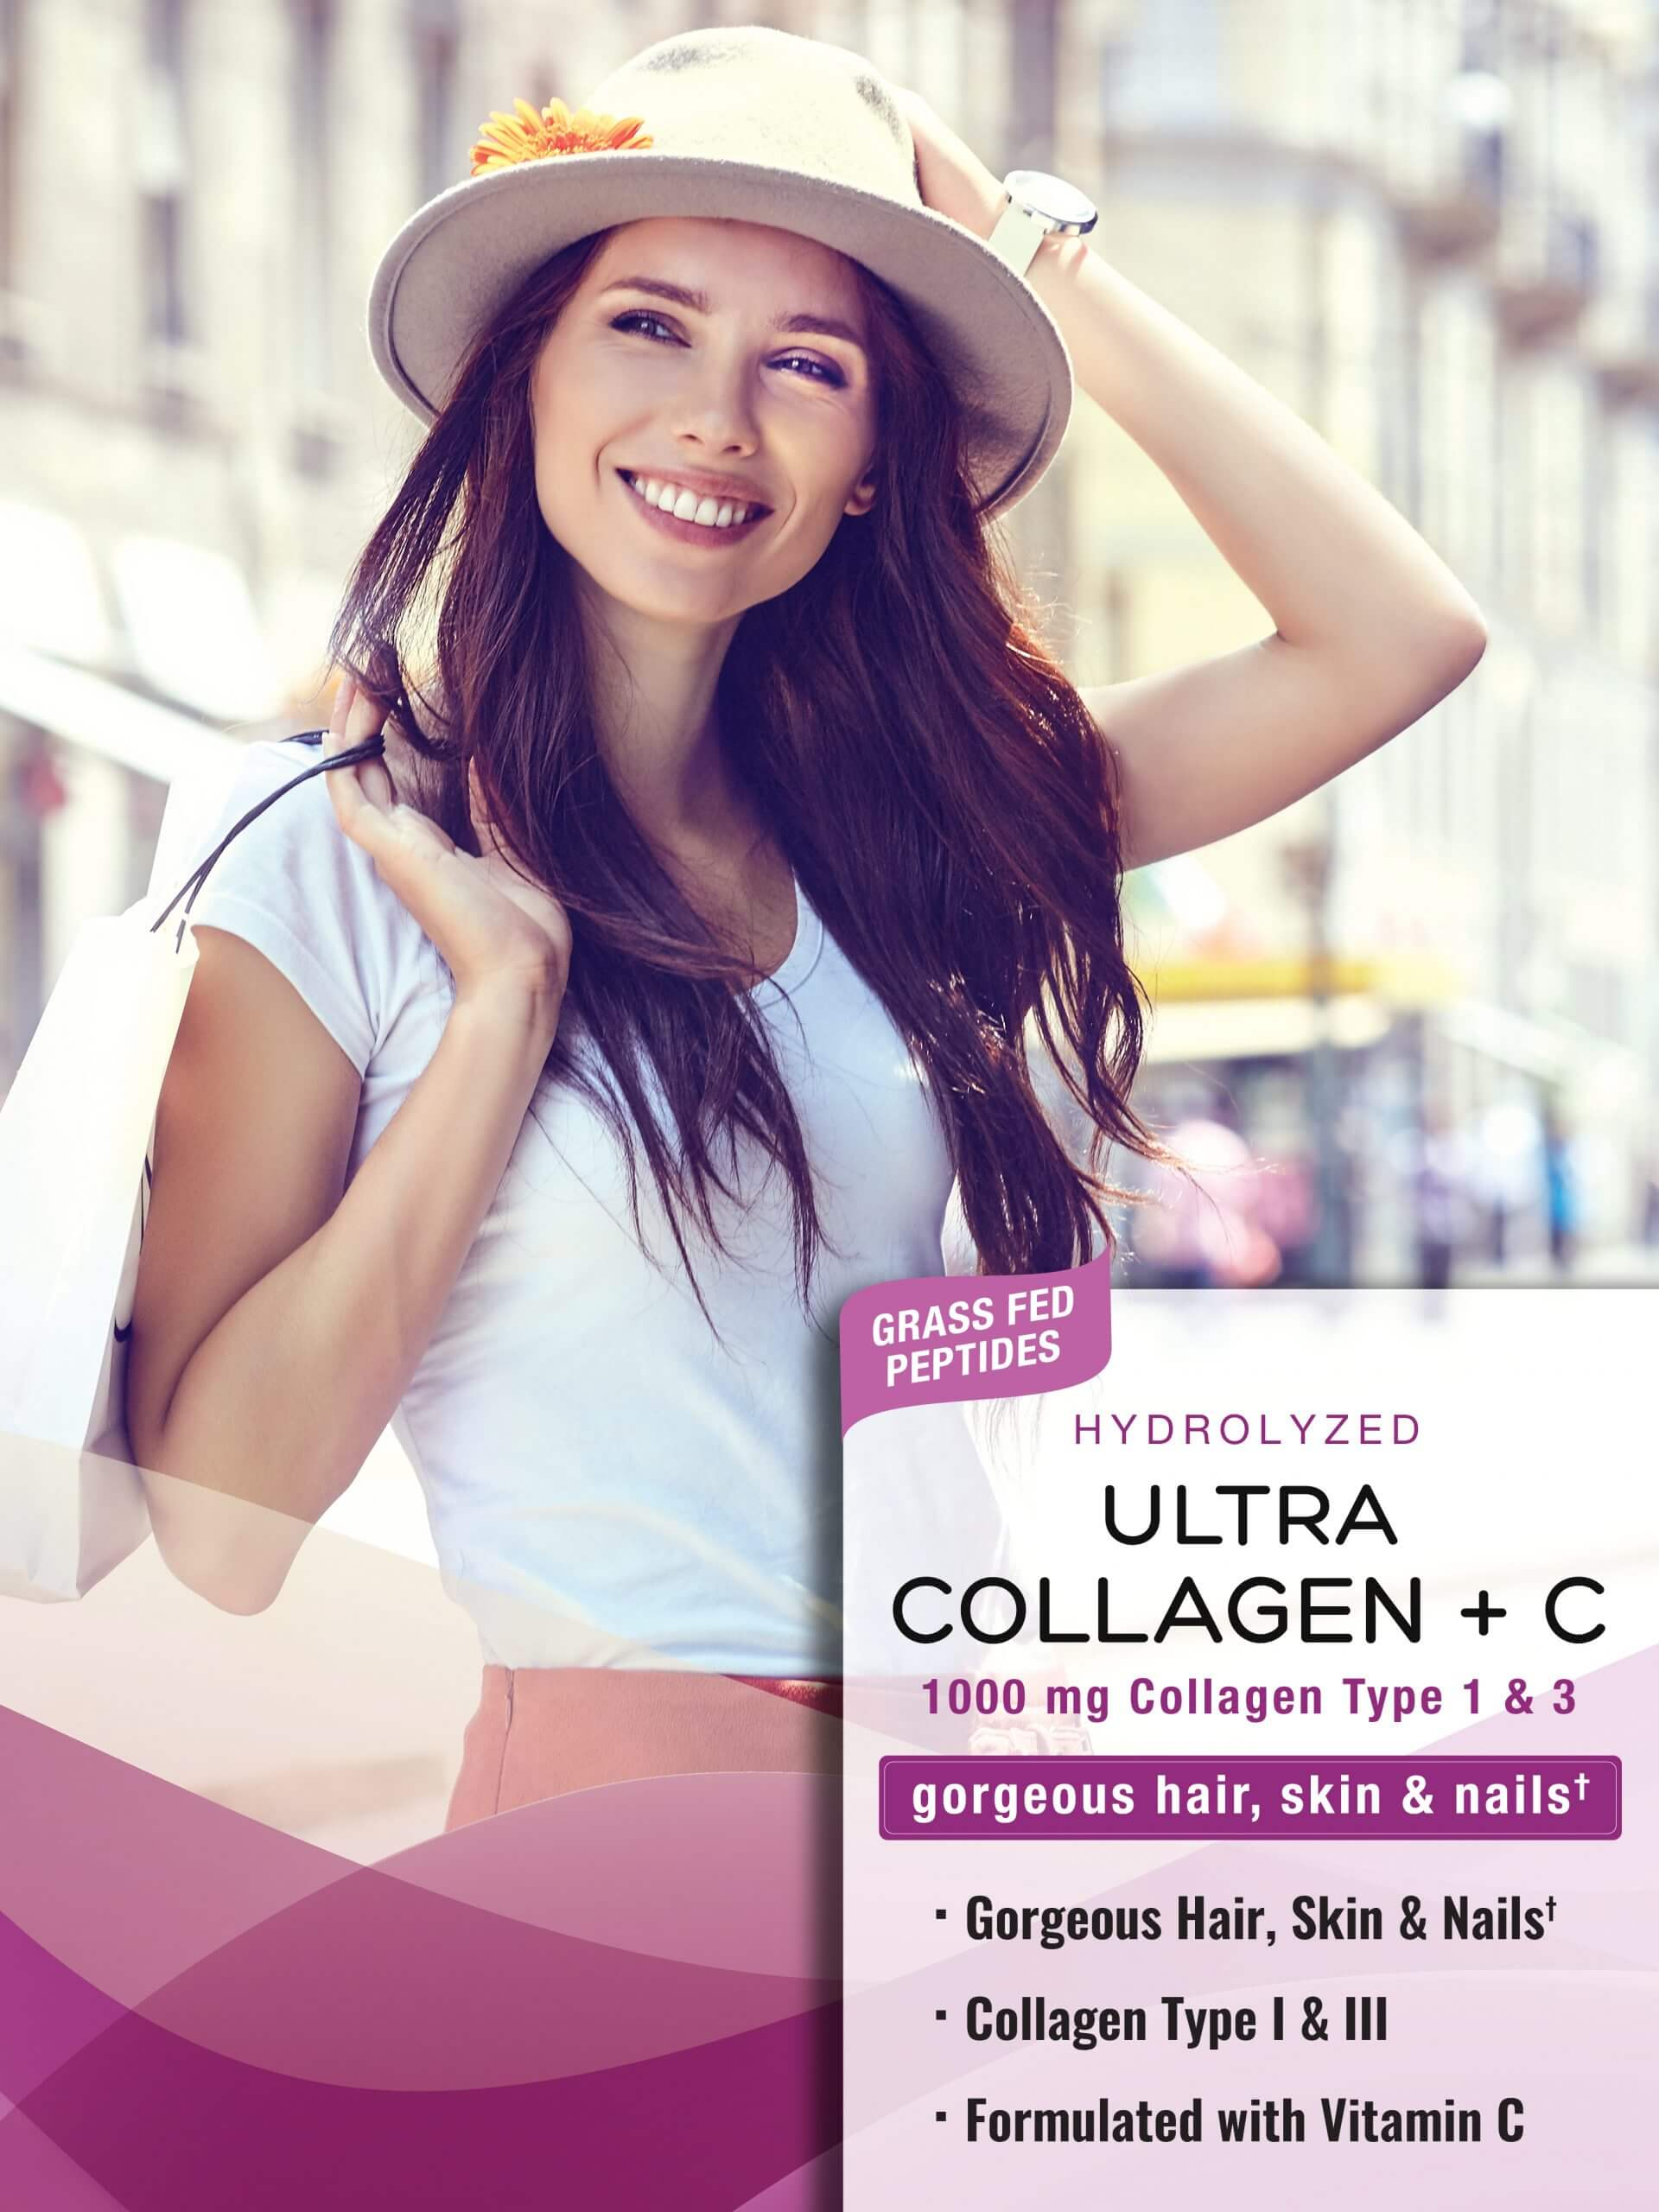 Hydrolyzed Collagen Type I & III <br>plus Vitamin C